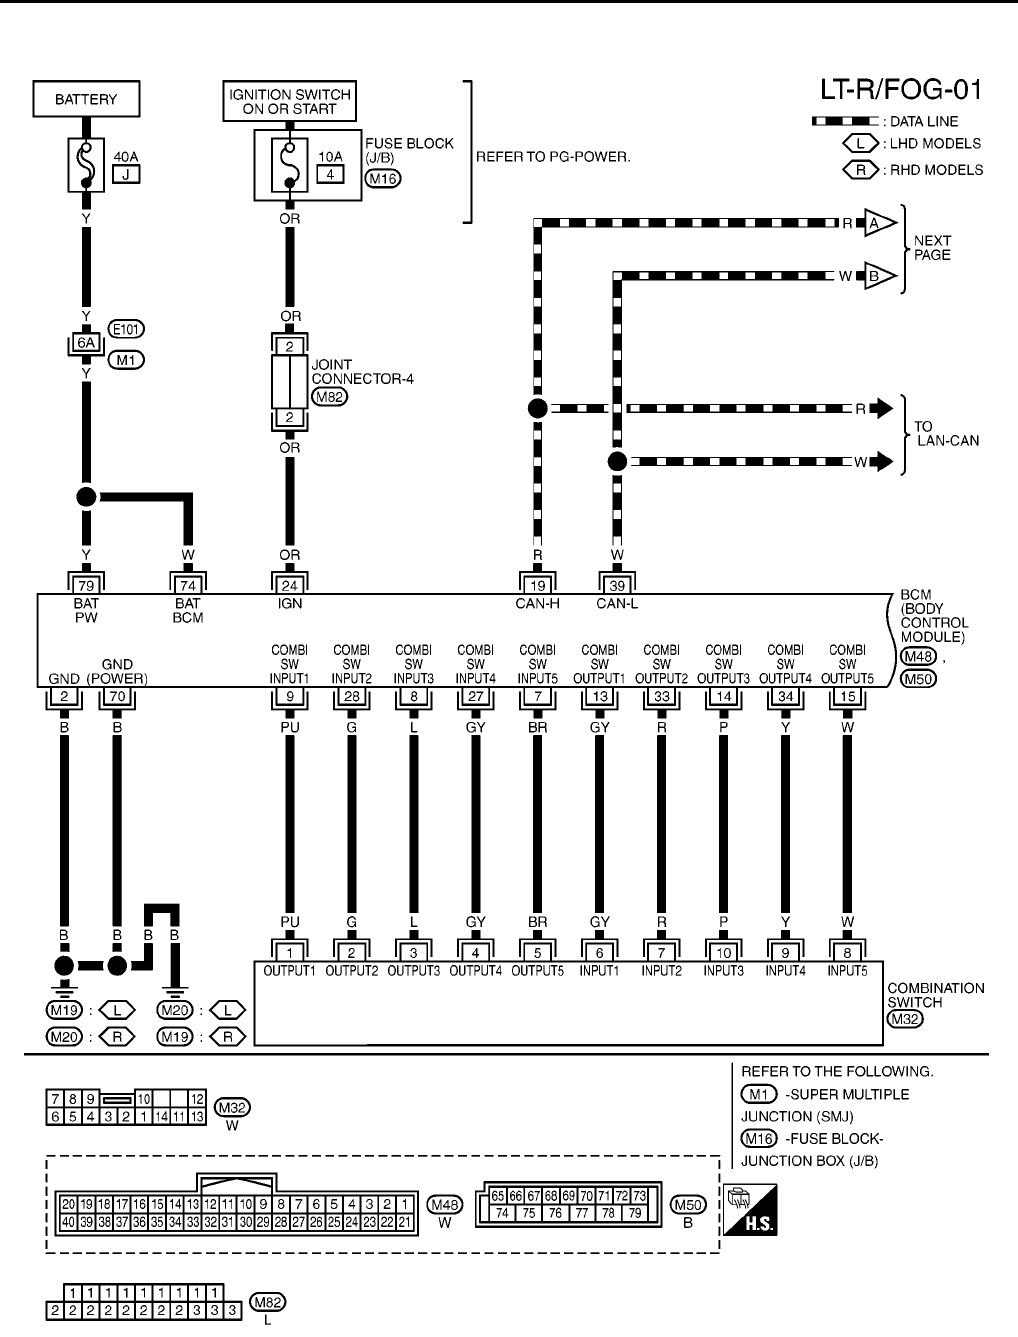 nissan micra wiring diagrams 2003 2005 23 pdf rh manuals co nissan micra wiring diagram for stereo nissan micra wiring diagram for stereo